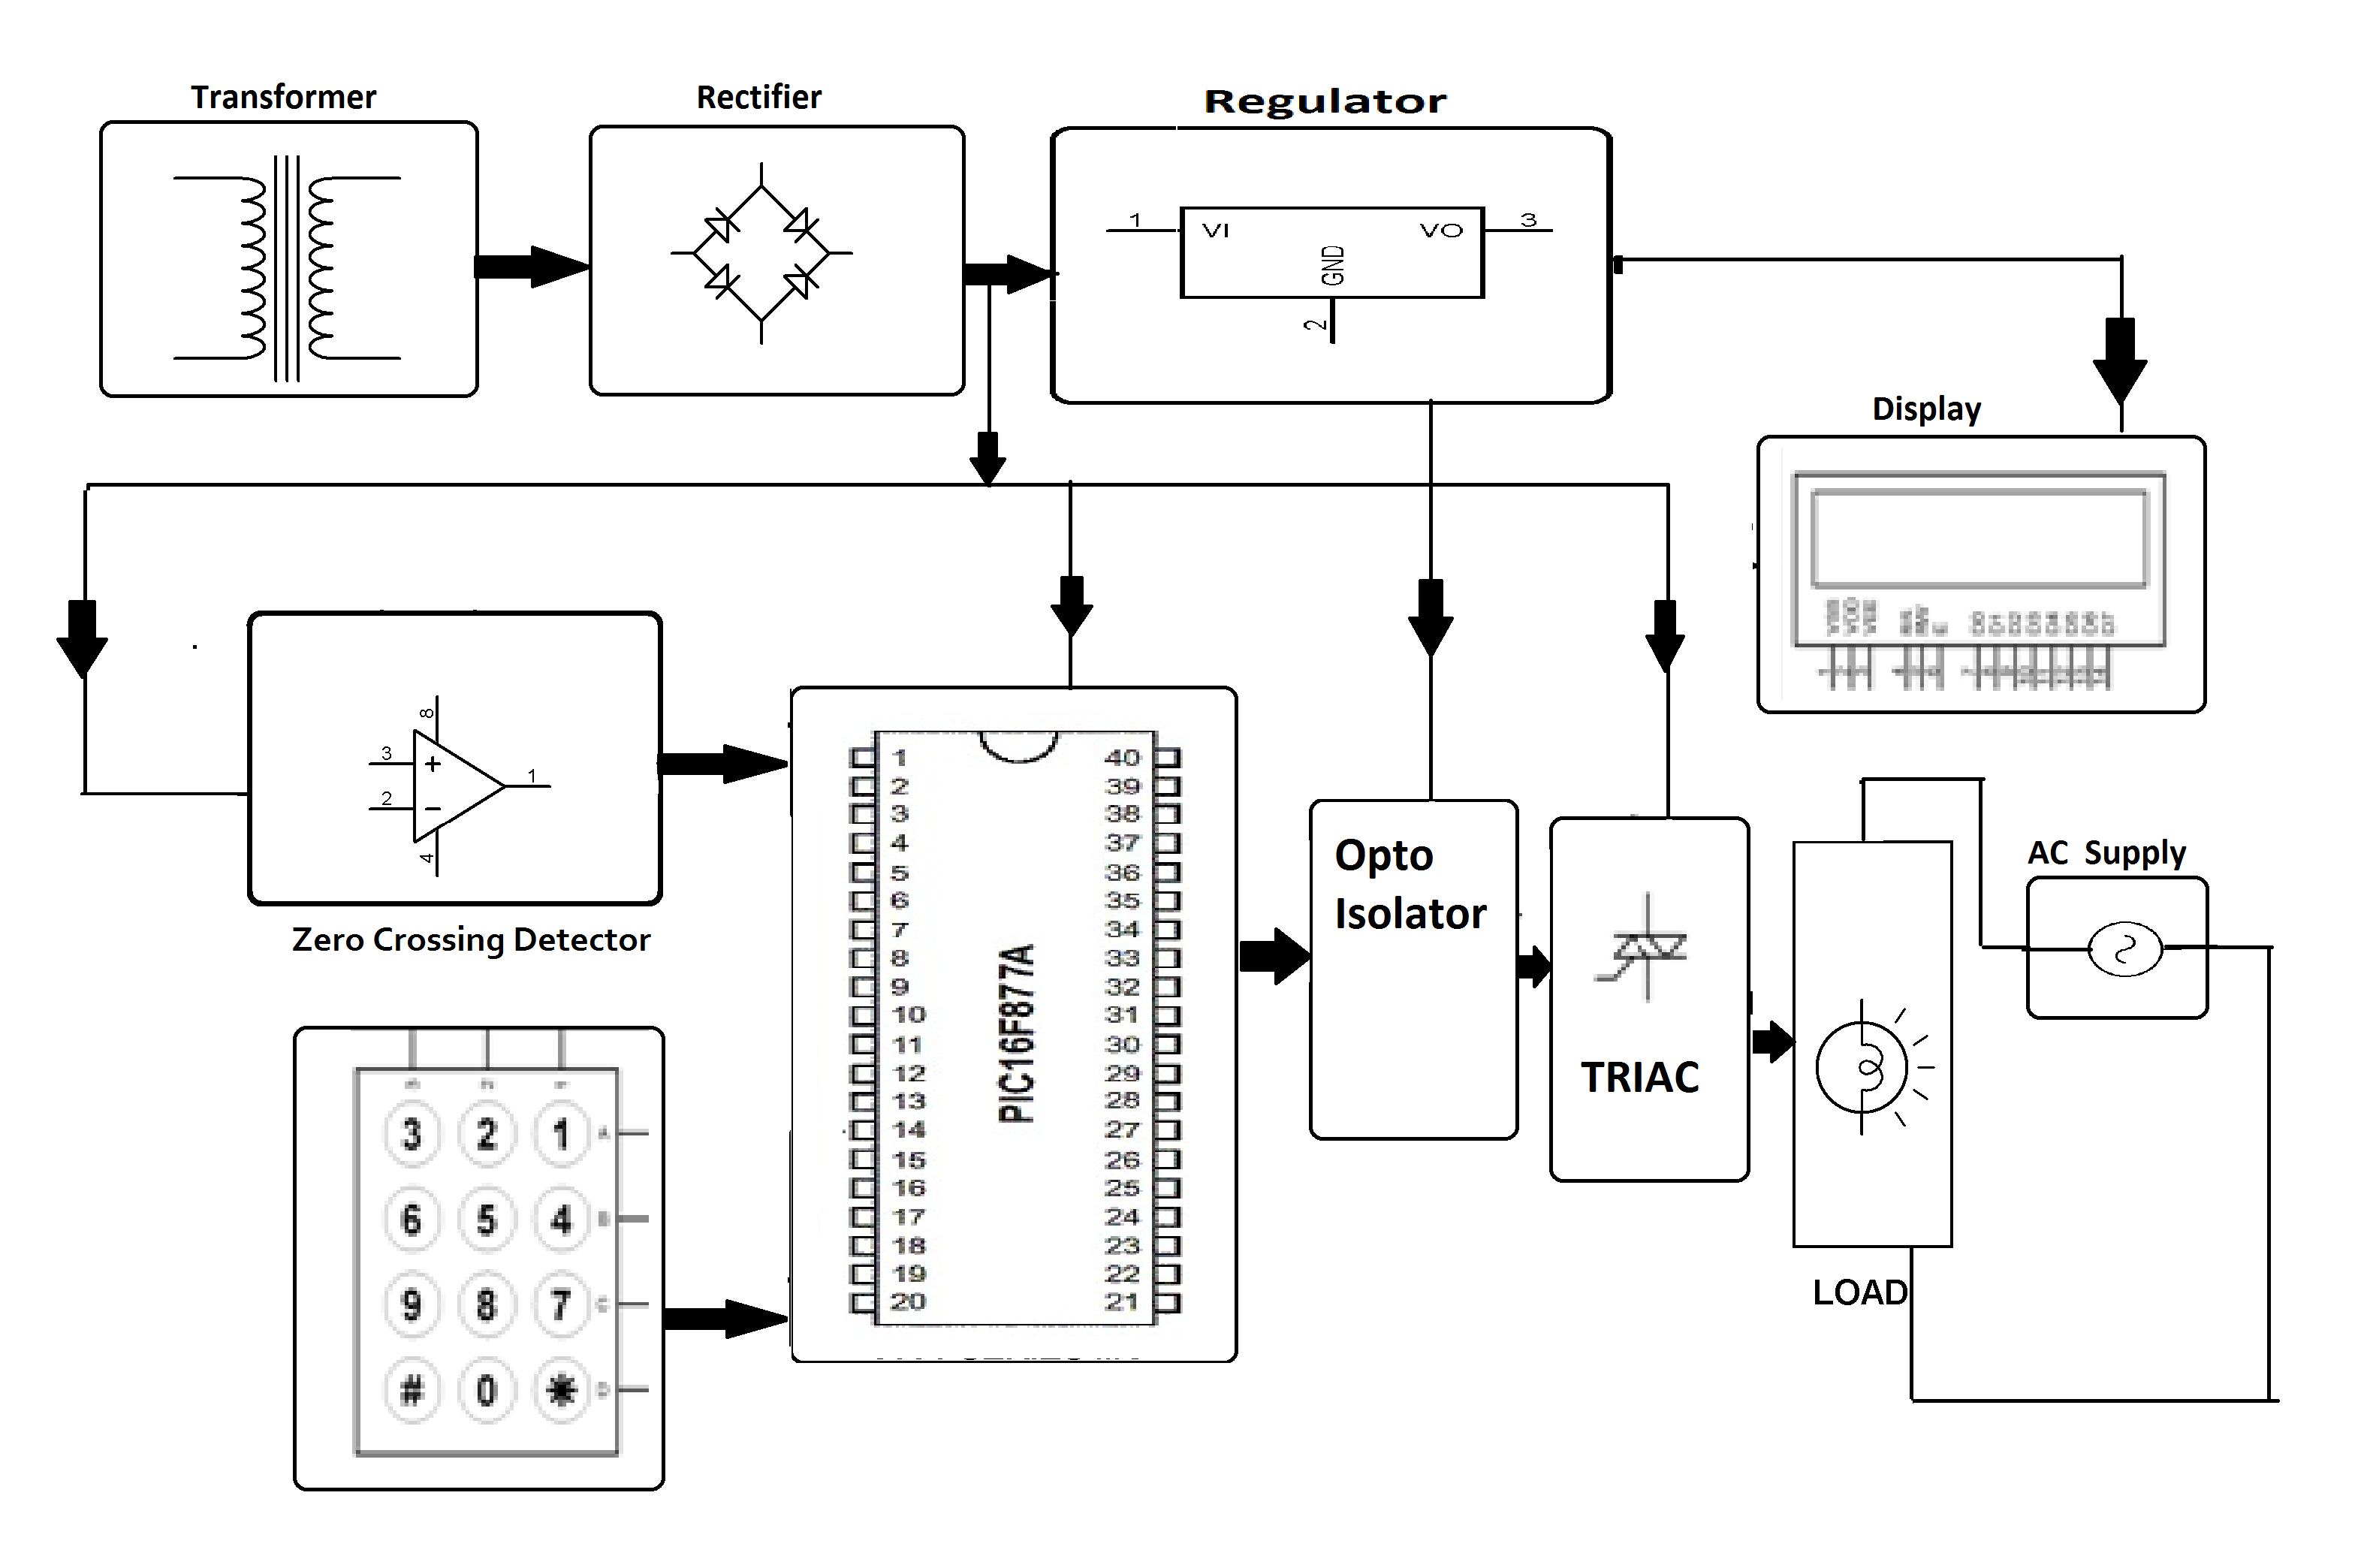 Power Control Block Diagram Data Circuit Audio Databasecircuit Schematics Diagrams And Projects Programmable Ac Using Pic Nevonprojects Rh Com System Example